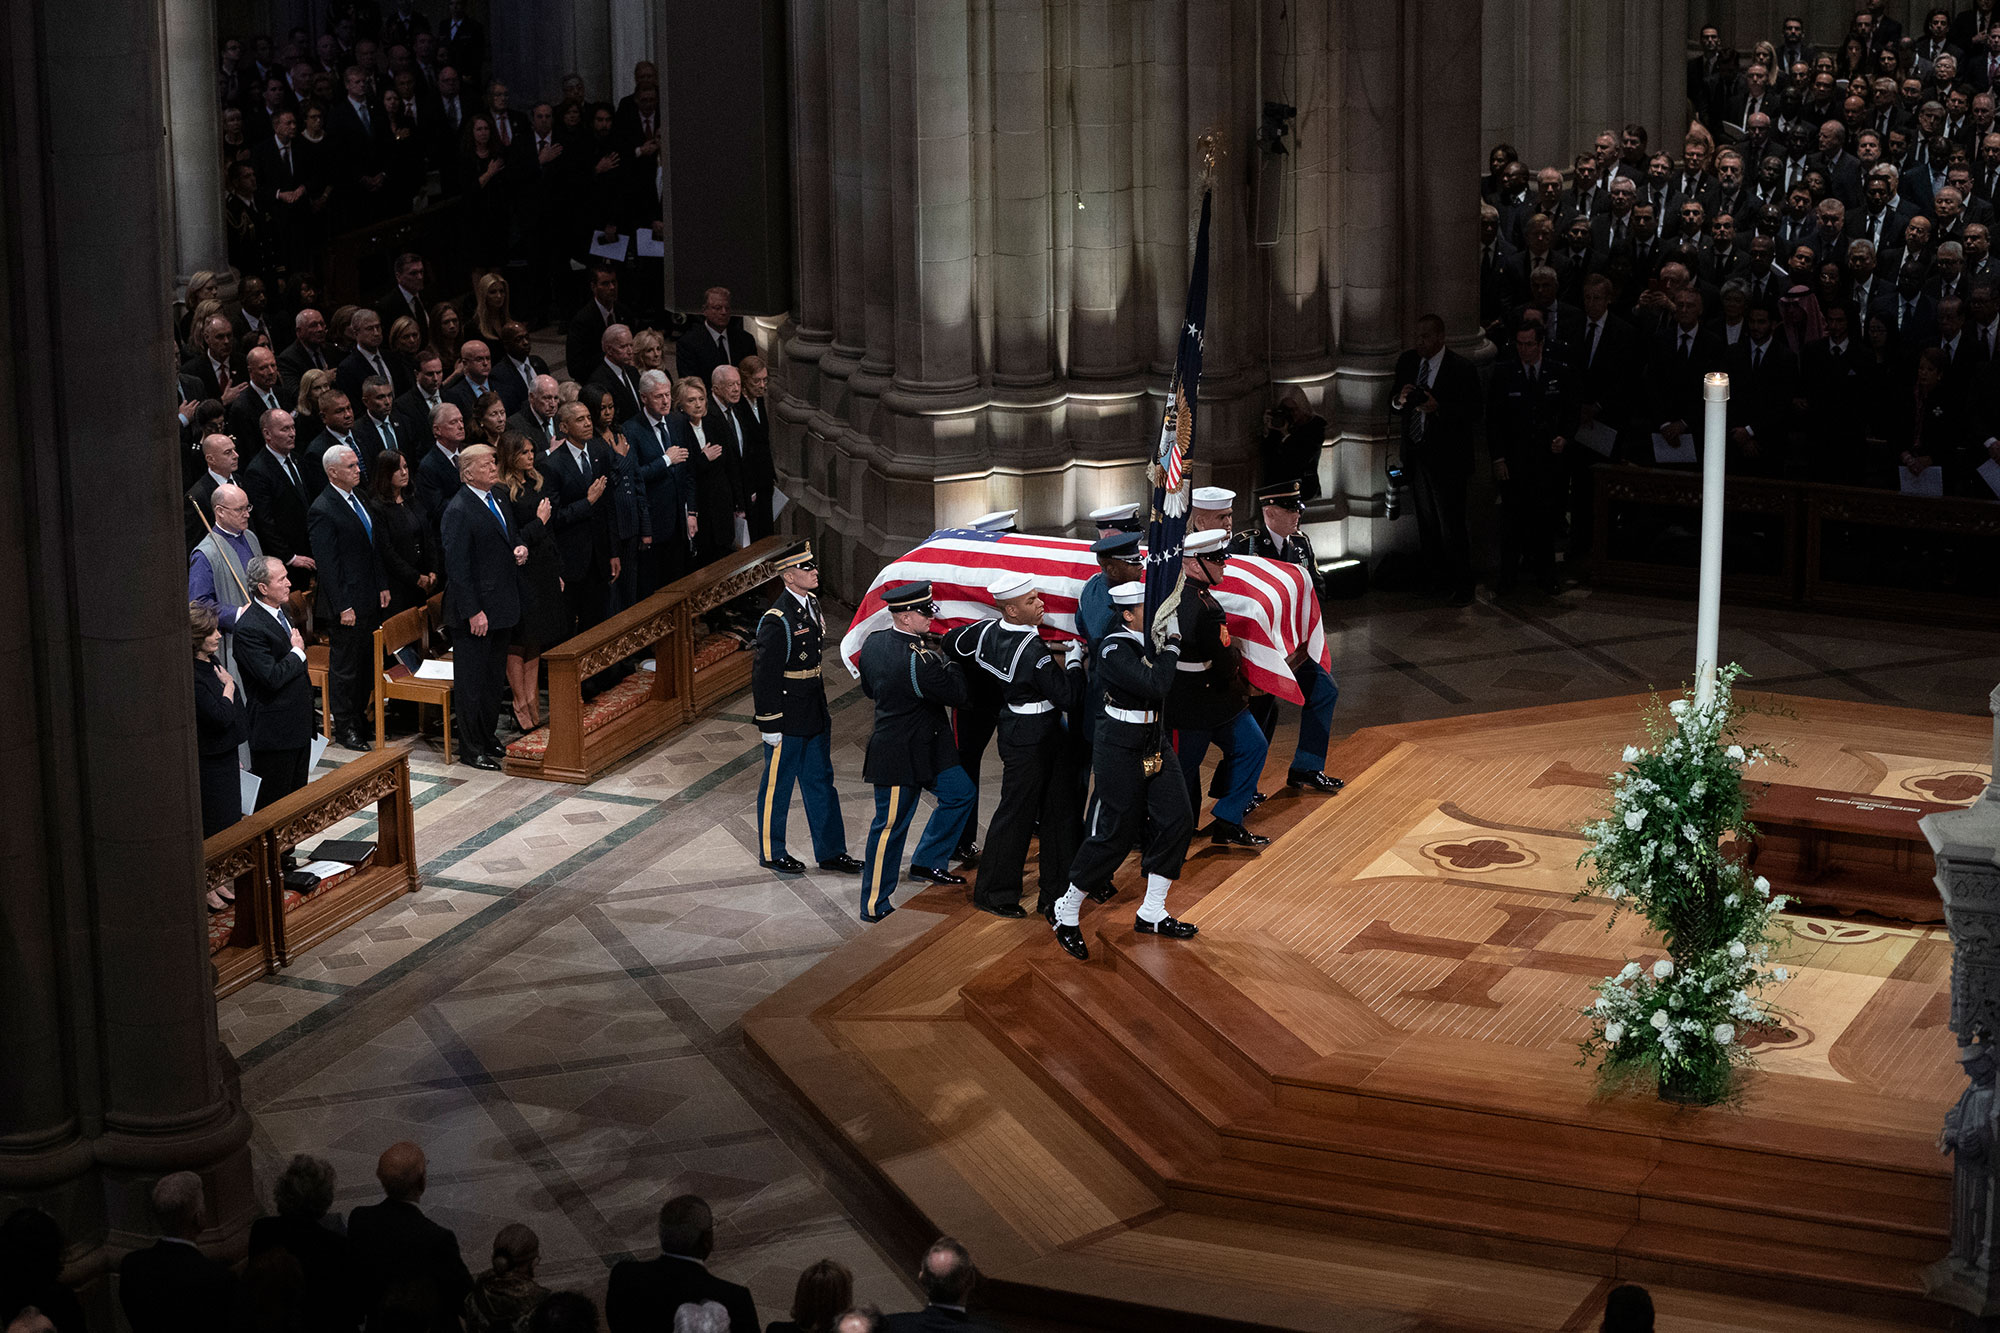 "<div class=""meta image-caption""><div class=""origin-logo origin-image none""><span>none</span></div><span class=""caption-text"">The flag-draped casket of former President George H.W. Bush is carried by a military honor guard. (Carolyn Kaster/AP Photo)</span></div>"